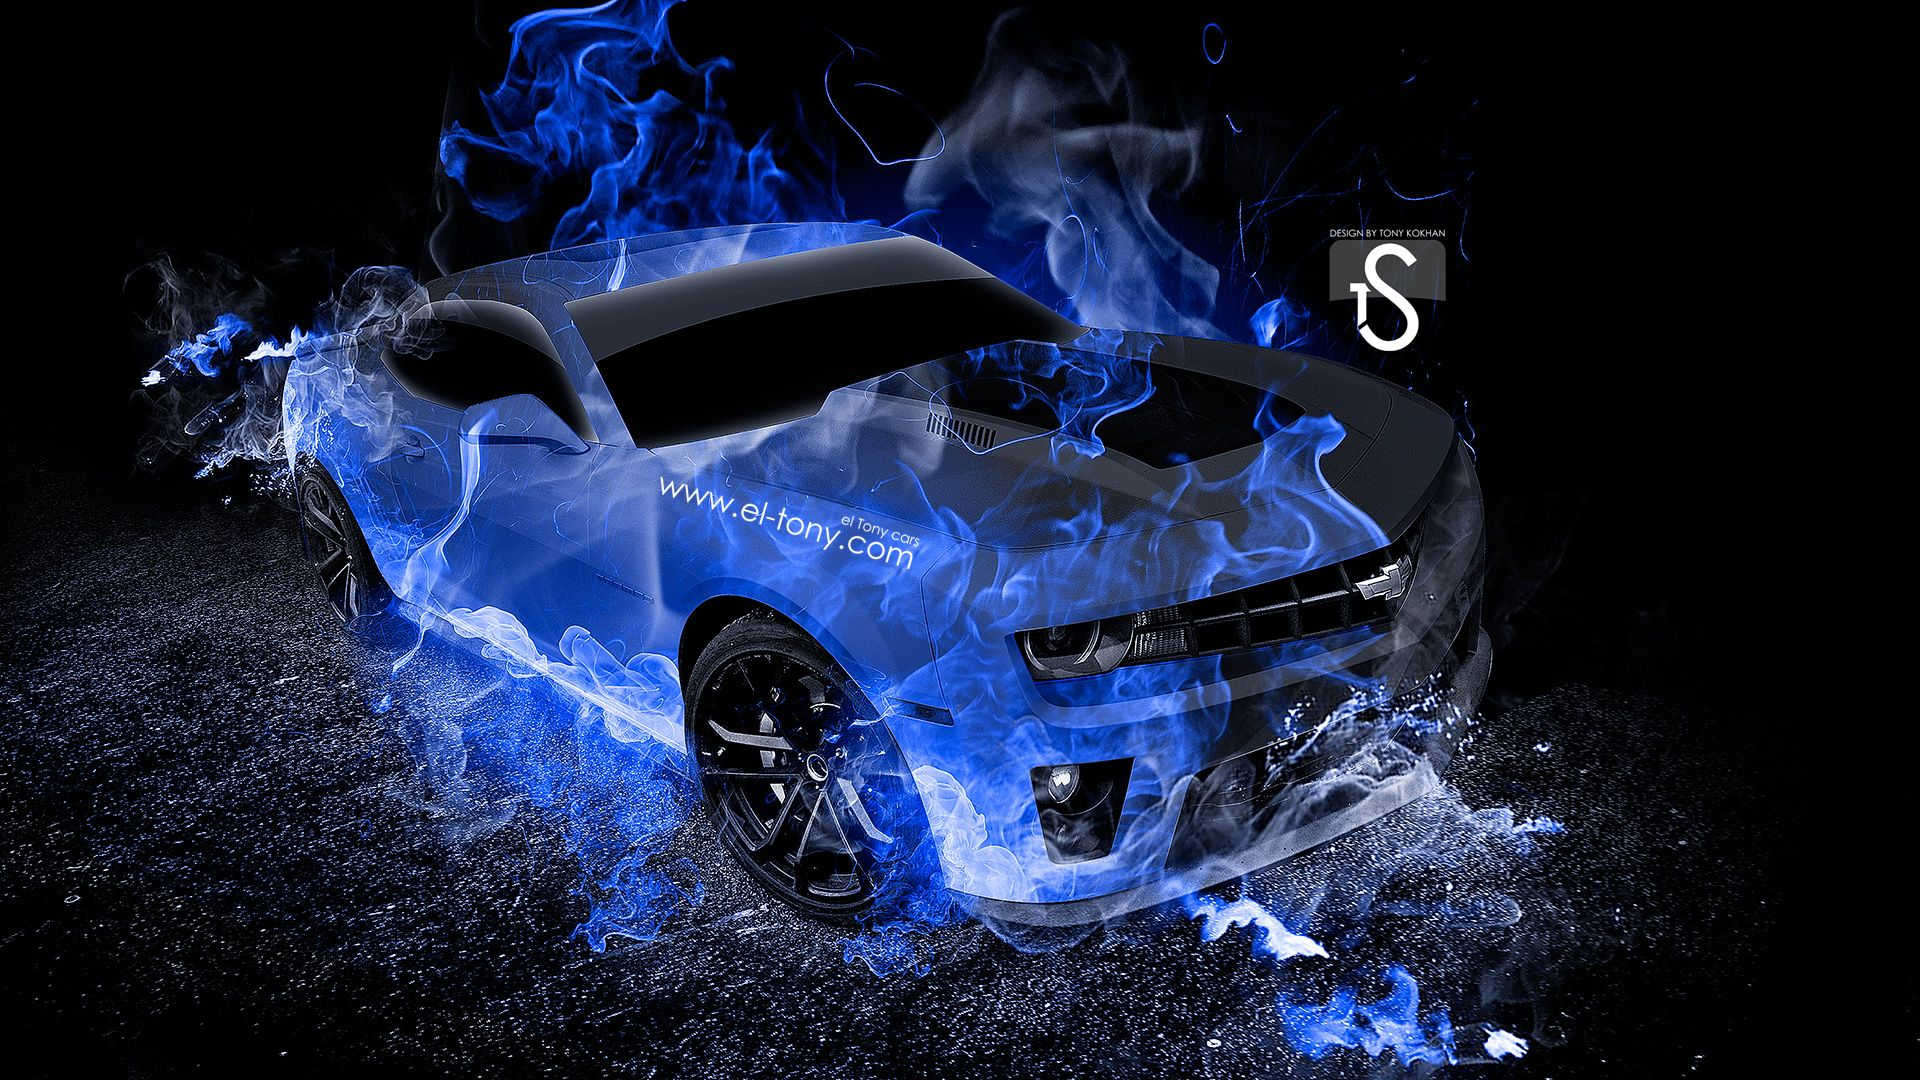 Fire Camaro Wallpapers Top Free Fire Camaro Backgrounds Wallpaperaccess